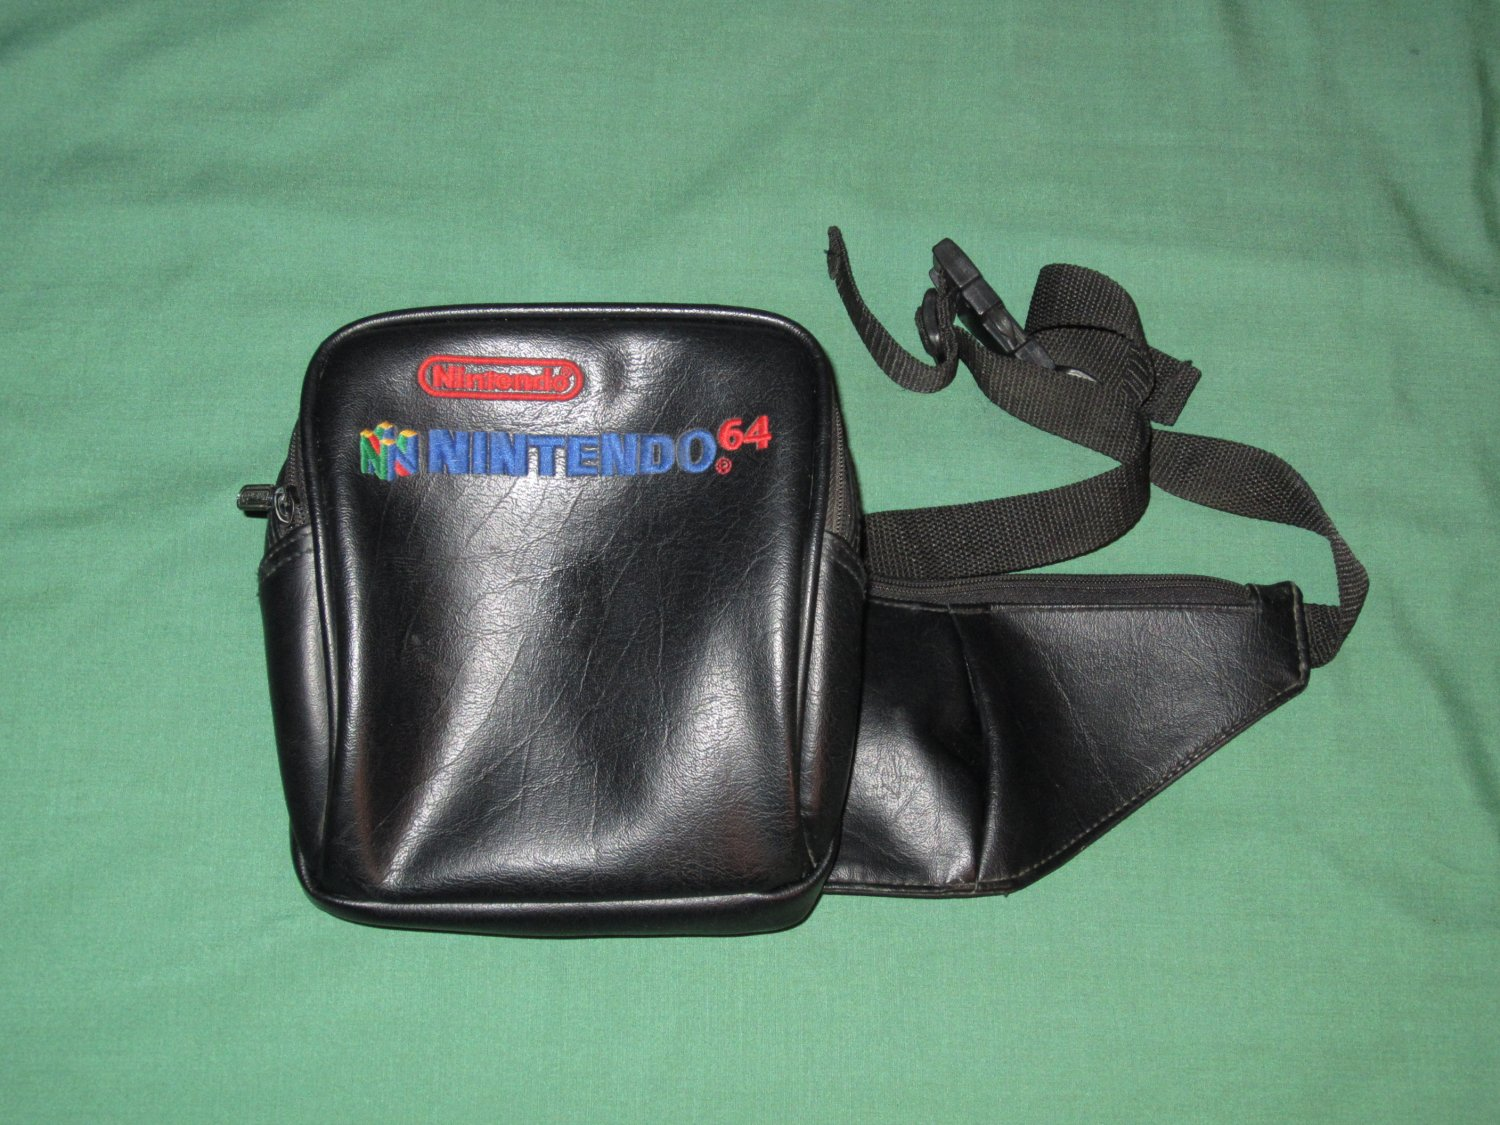 Nintendo 64 Fanny Pack Travel Bag